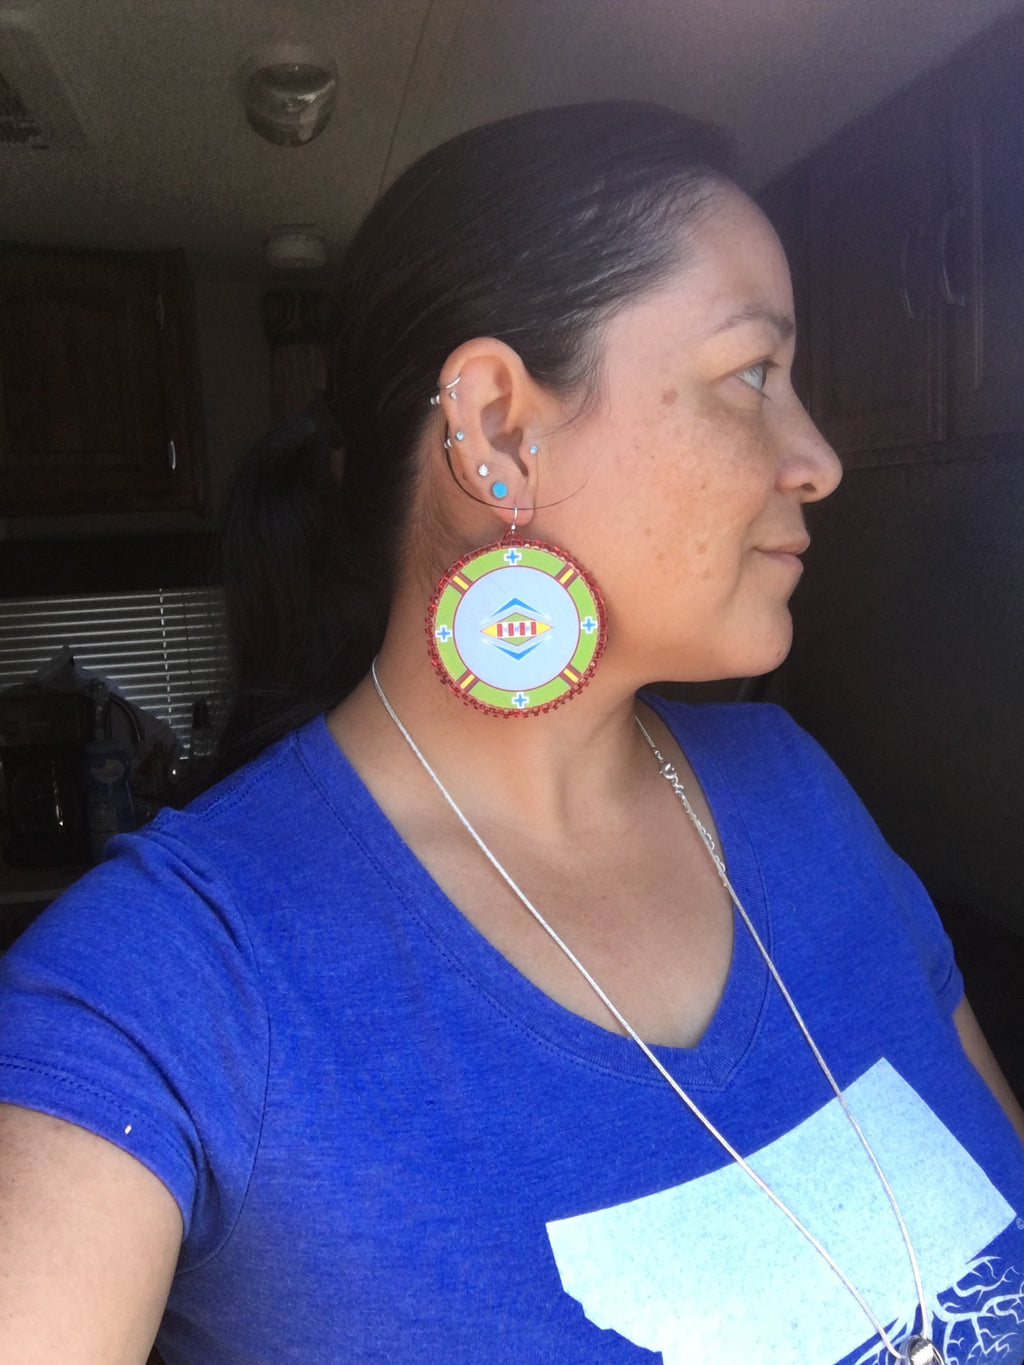 "Baaalaxiileetash ""I am Fearless"" handmade earrings"